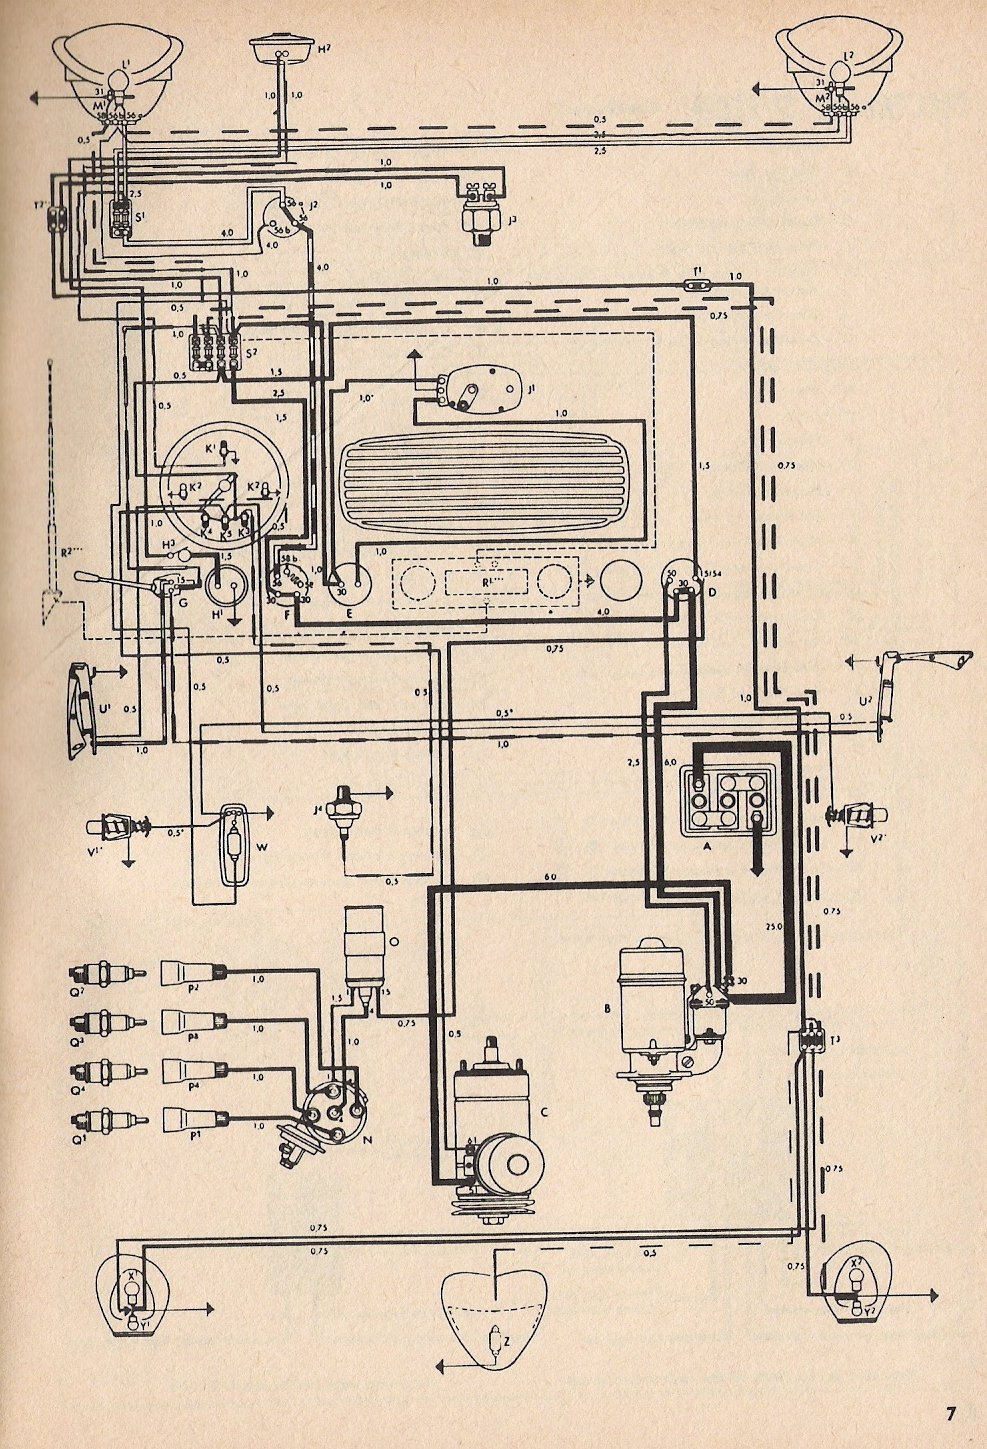 thesamba com type 1 wiring diagrams 1974 vw super beetle wiring diagram vw beetle diagram #6